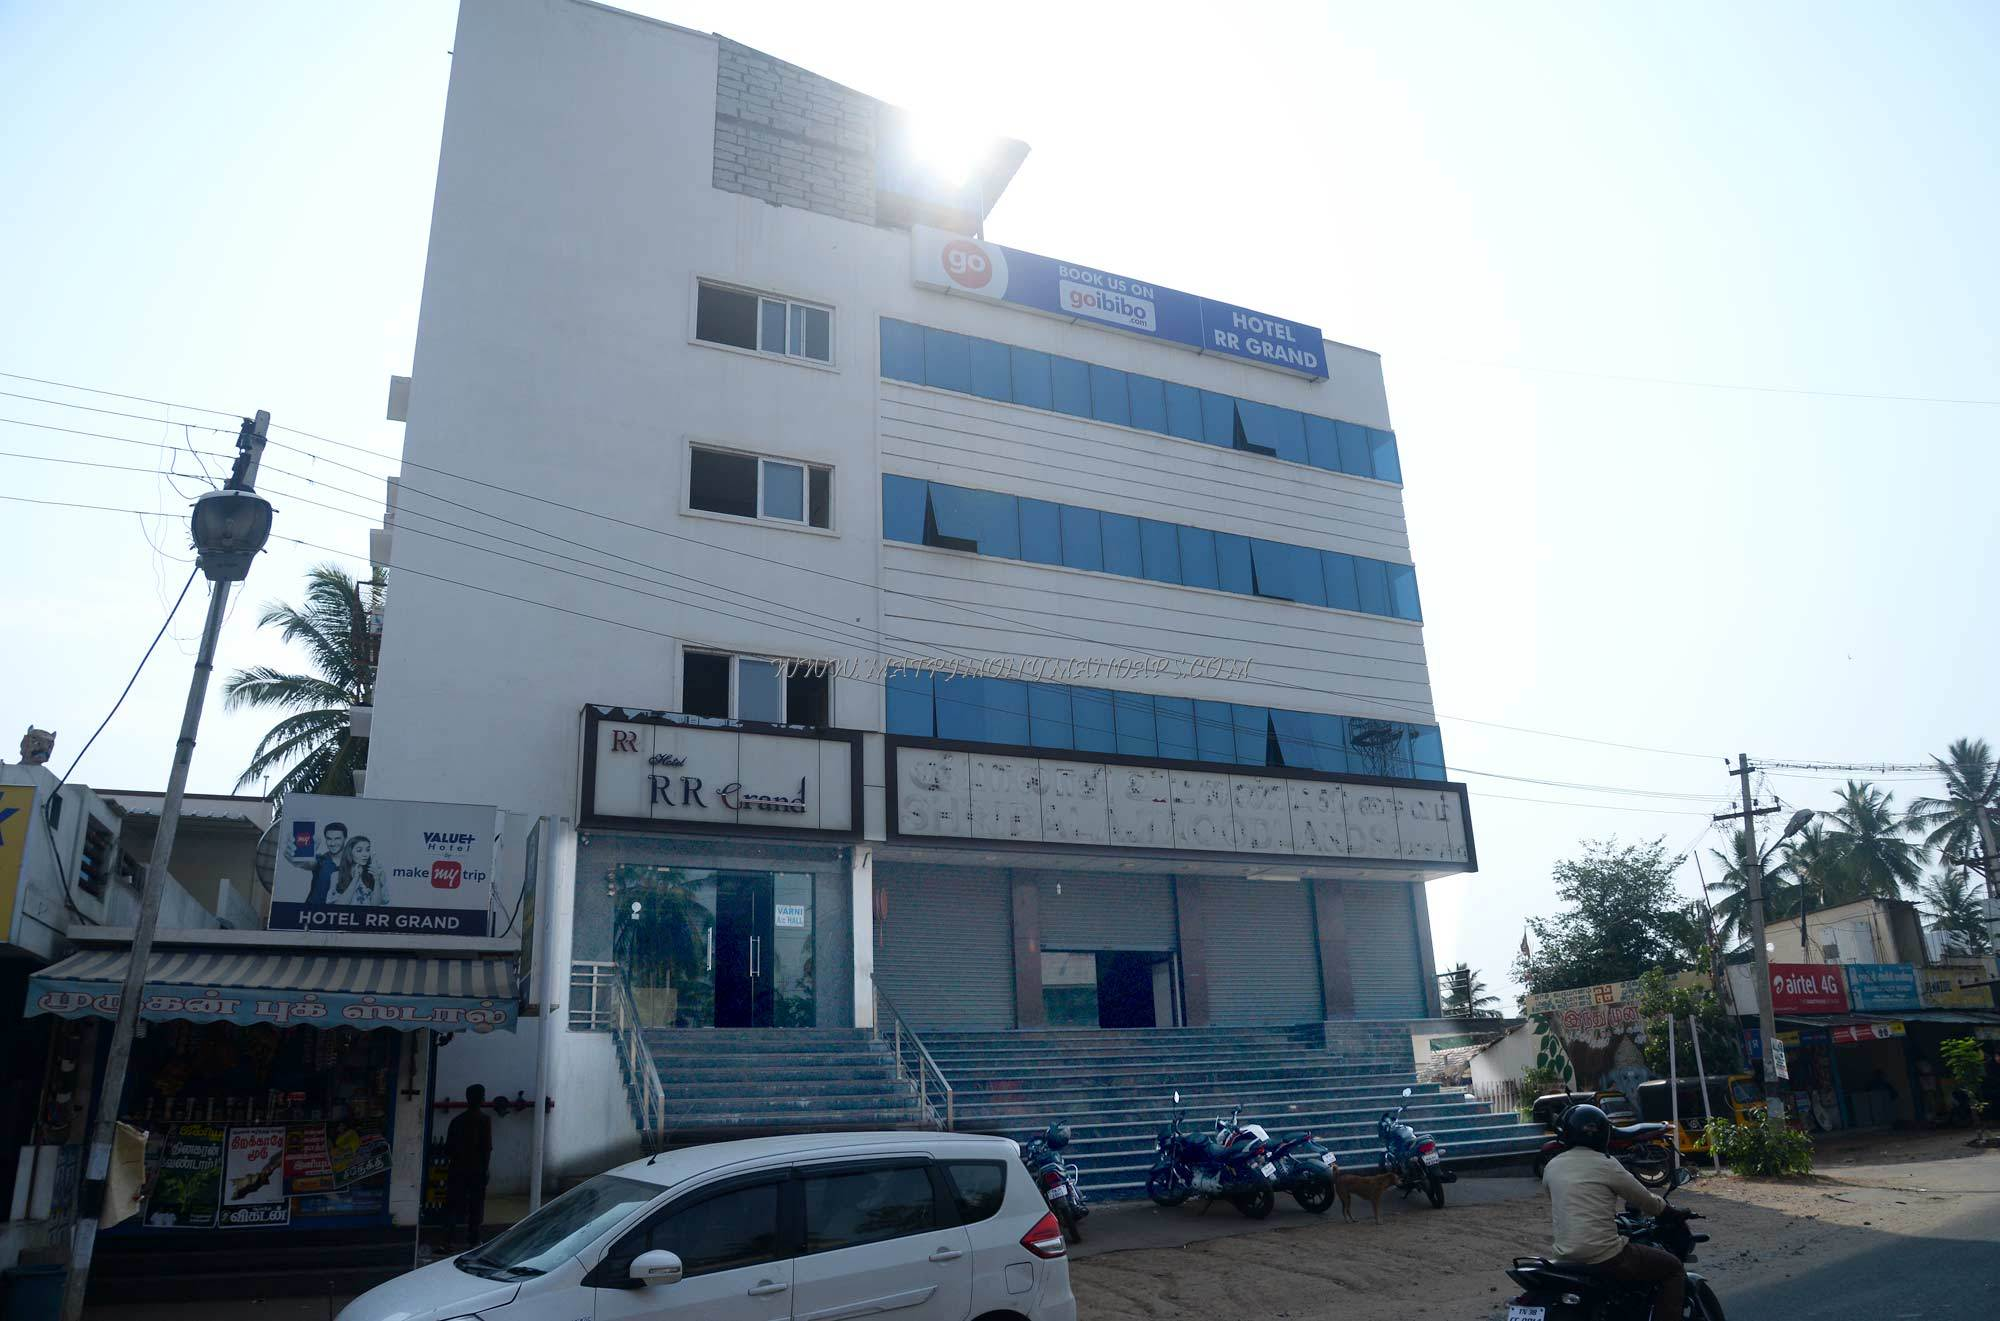 Find the availability of the Hotel RR Grand (A/C) in Thadagam, Coimbatore and avail special offers